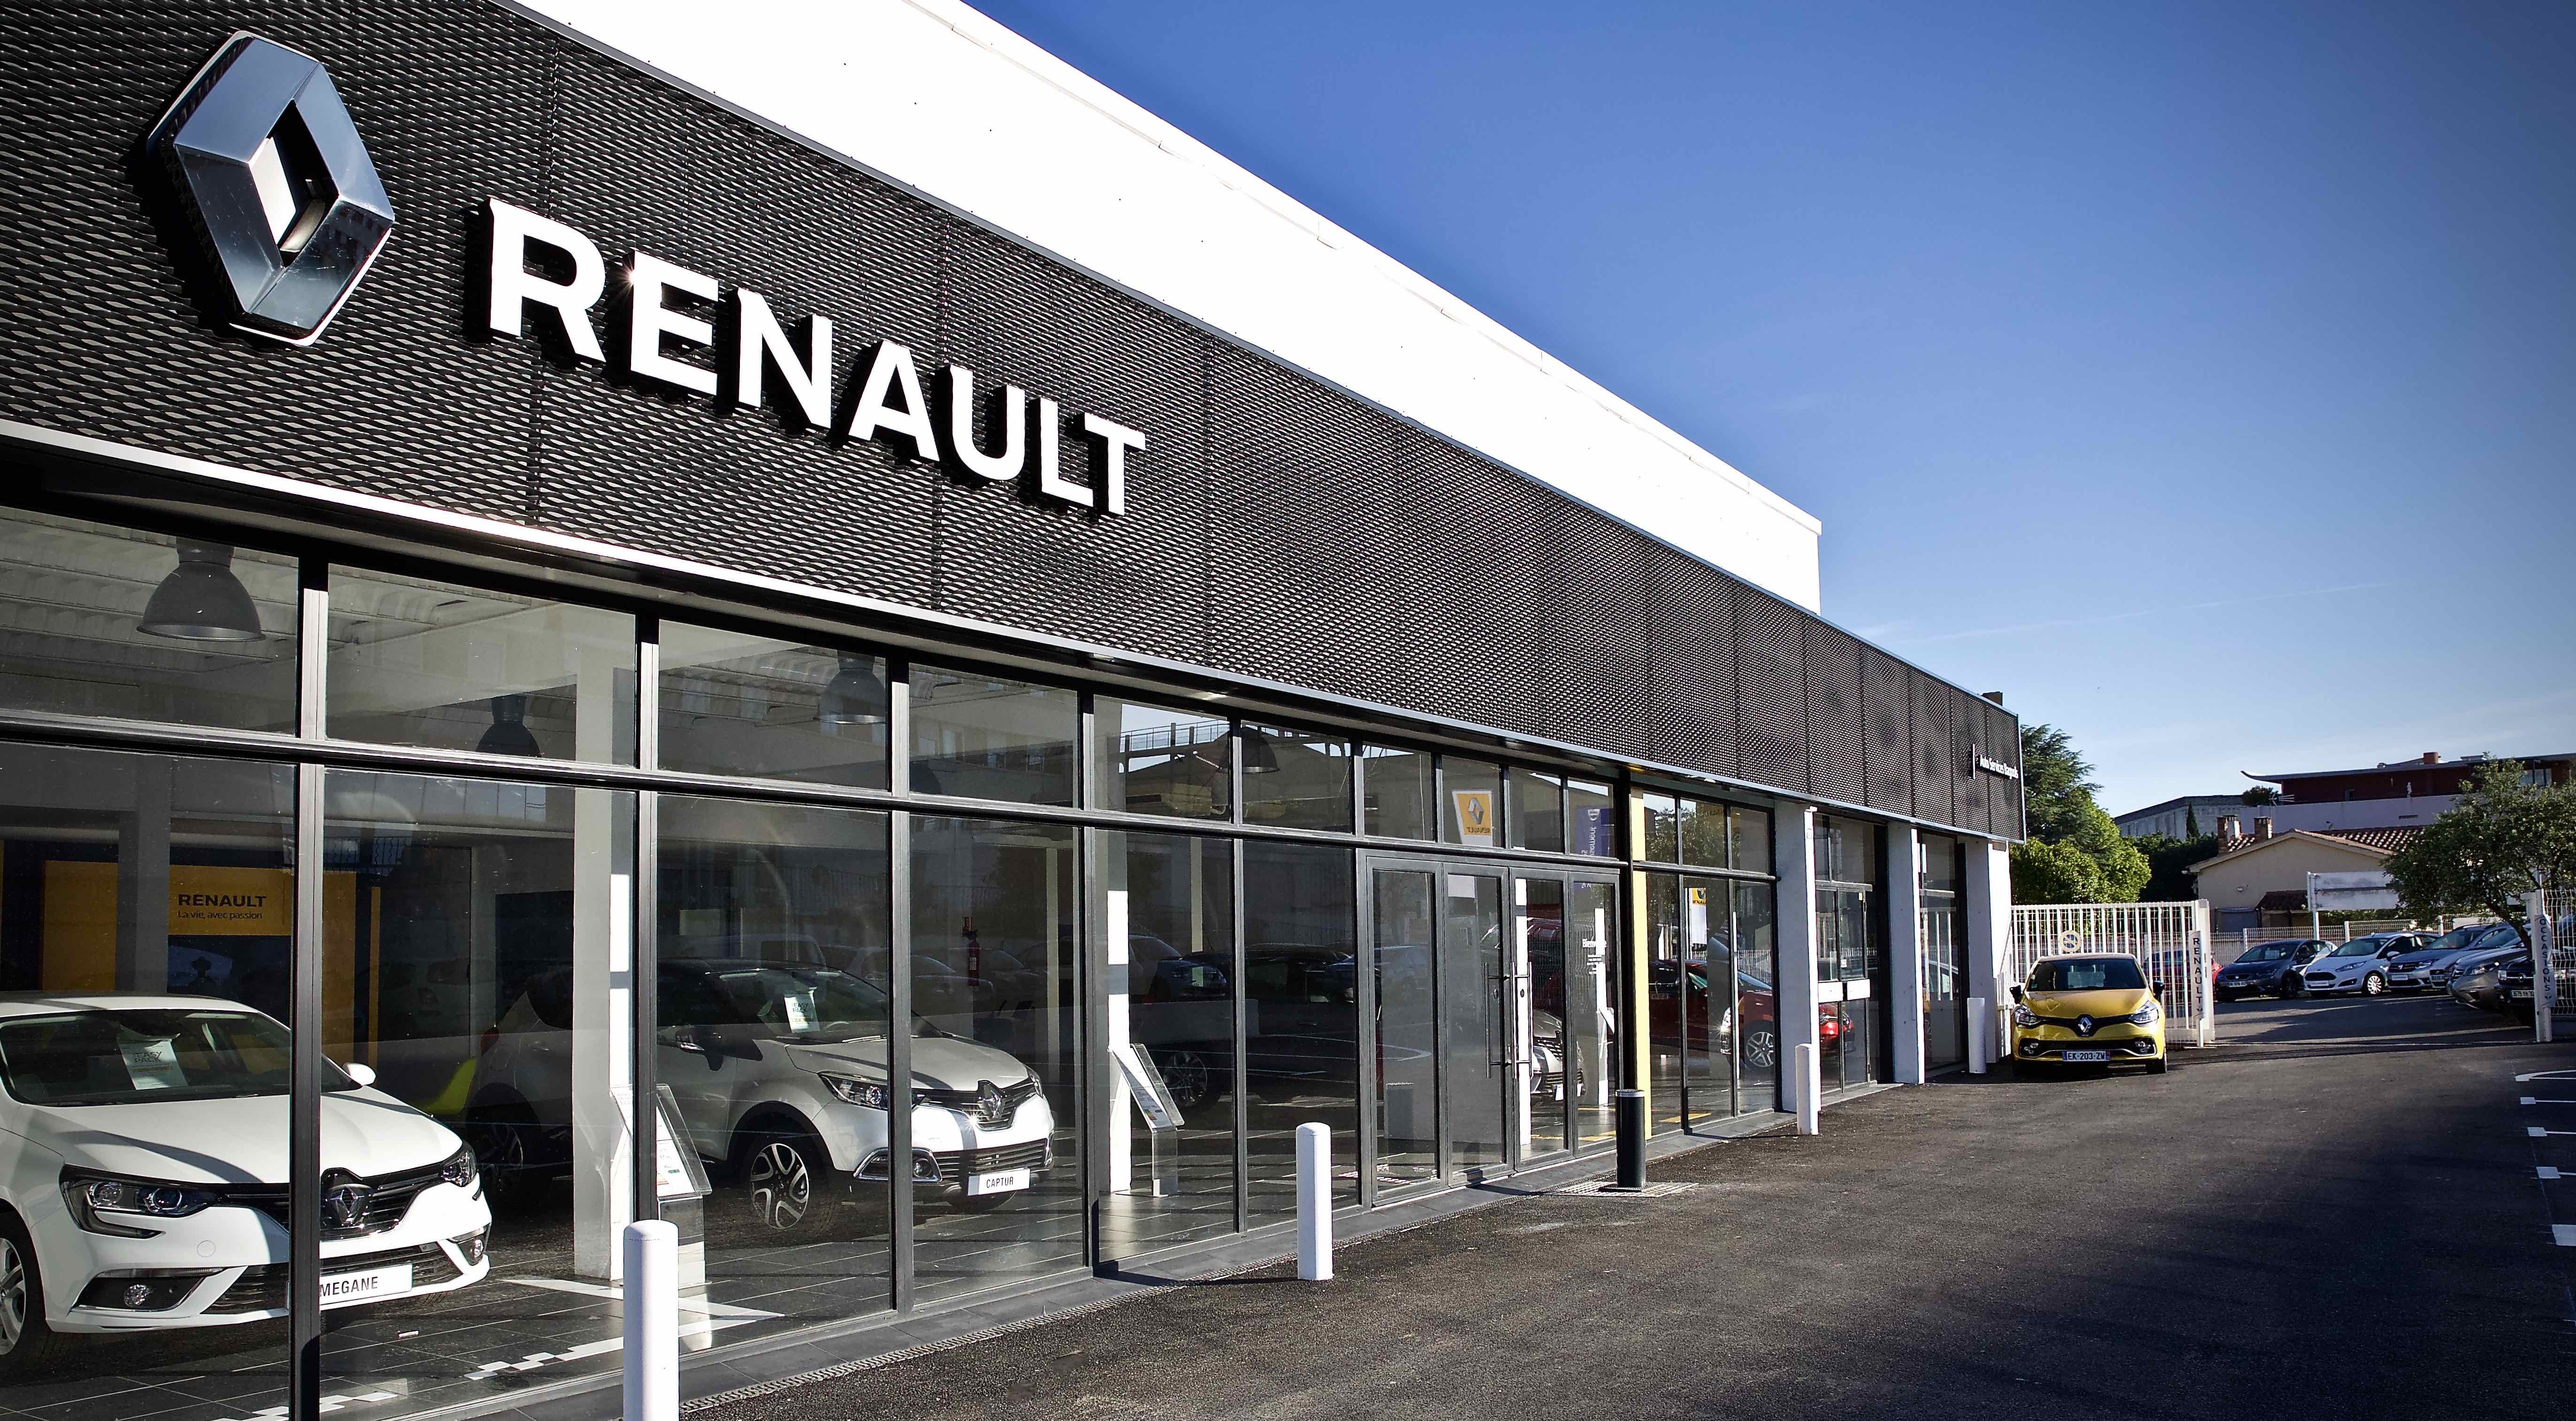 bagnols renault auto services pour vous servir toujours. Black Bedroom Furniture Sets. Home Design Ideas